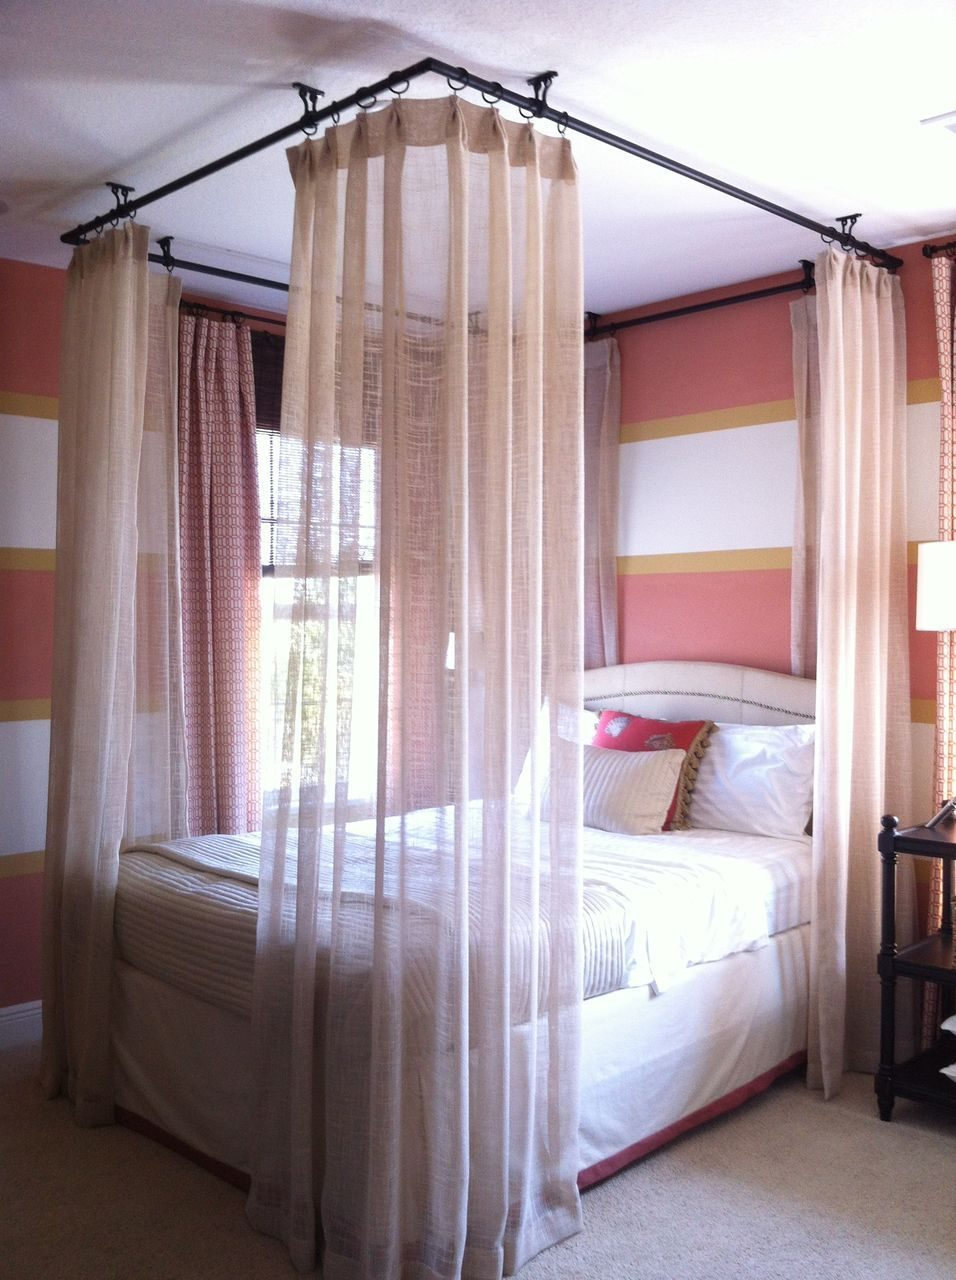 Ceiling Hung Curtains Around Bed Bedrooms In 2019 Canopy